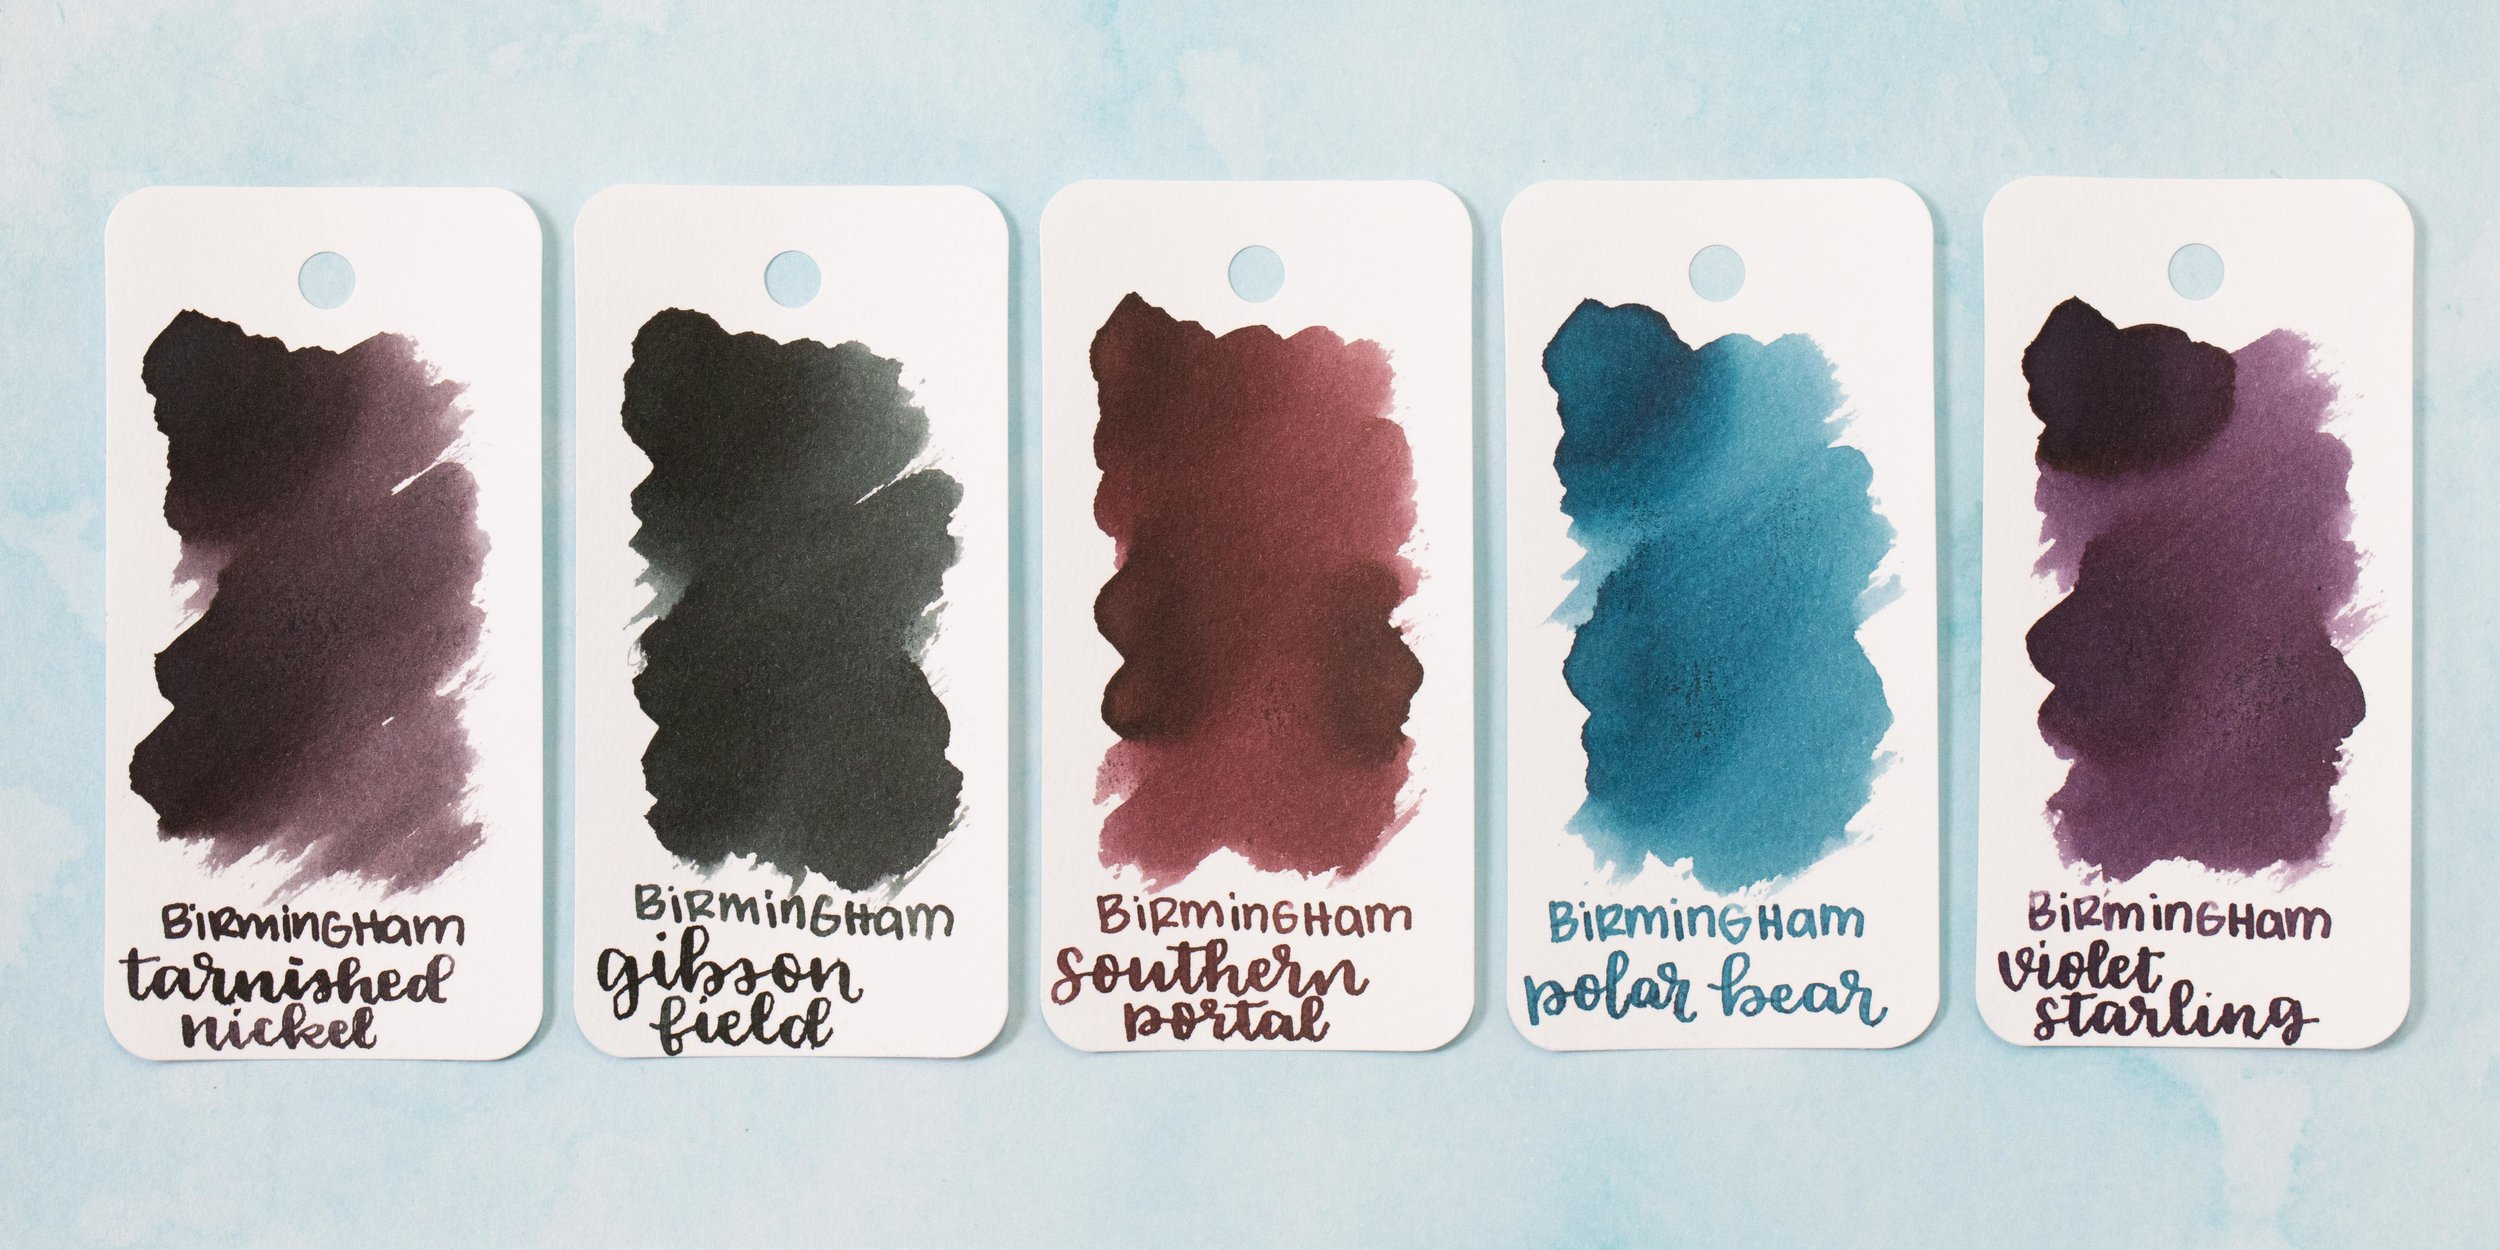 Tarnished Nickel is a dark brownish-grey, Gibson Field is a dark green, Southern Portal is a dark red, Polar Bear is a medium blue, and Violet Starling is a dark purple.